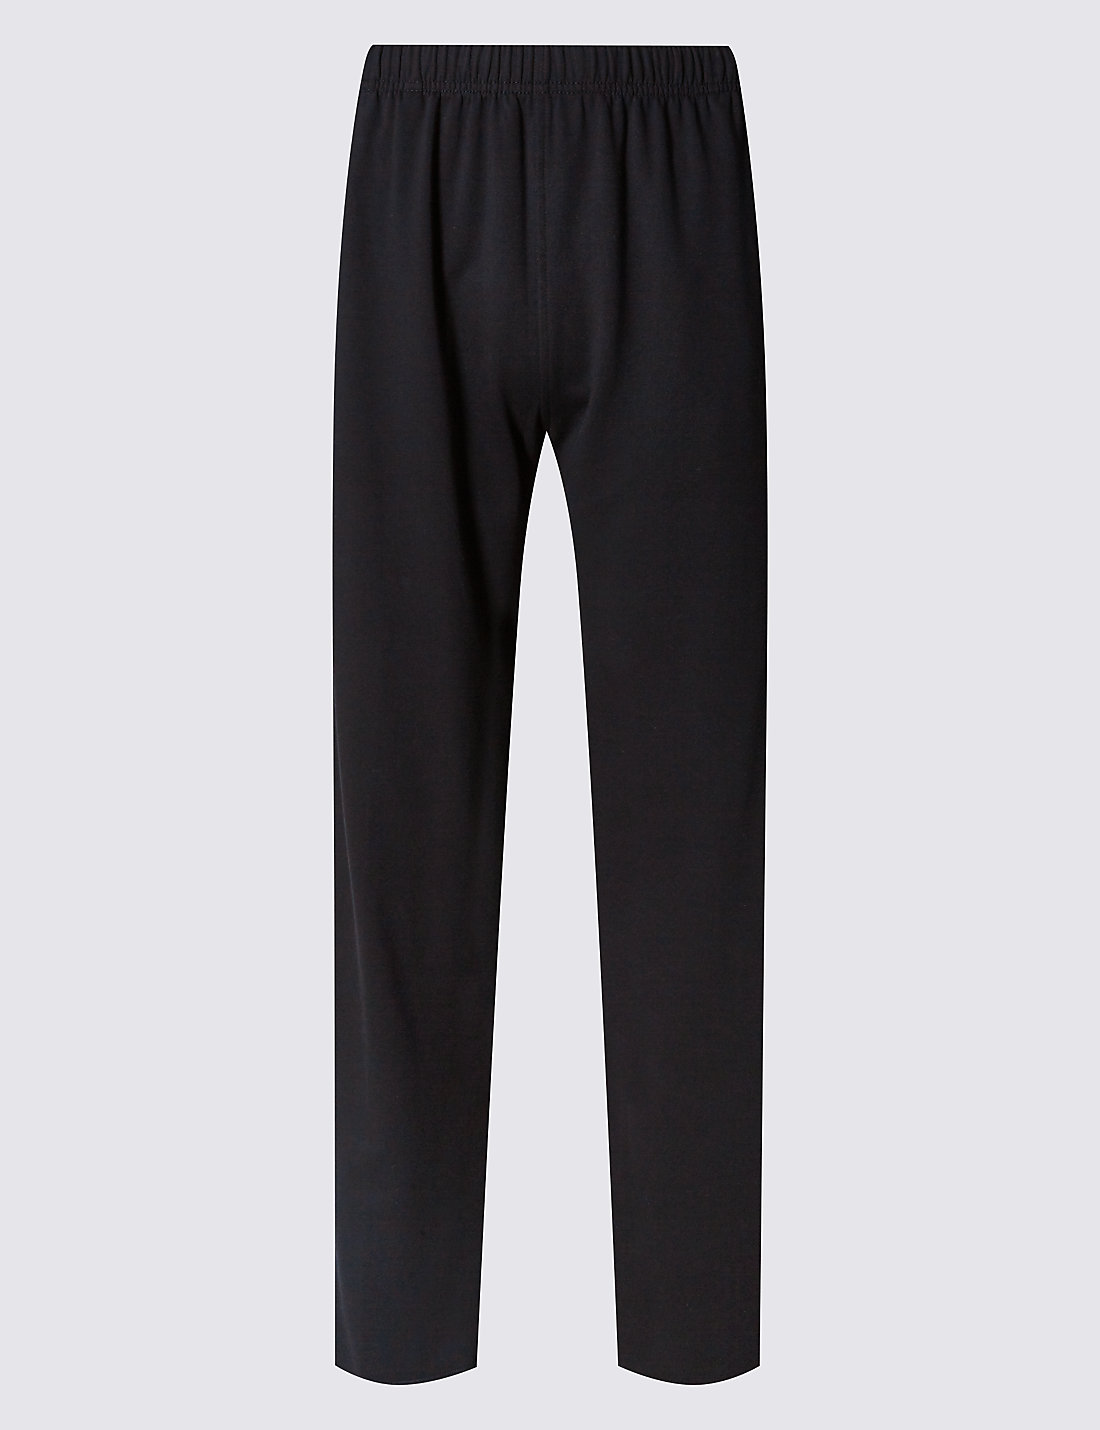 Mens jacket marks and spencer - Cotton Rich Joggers M S Collection